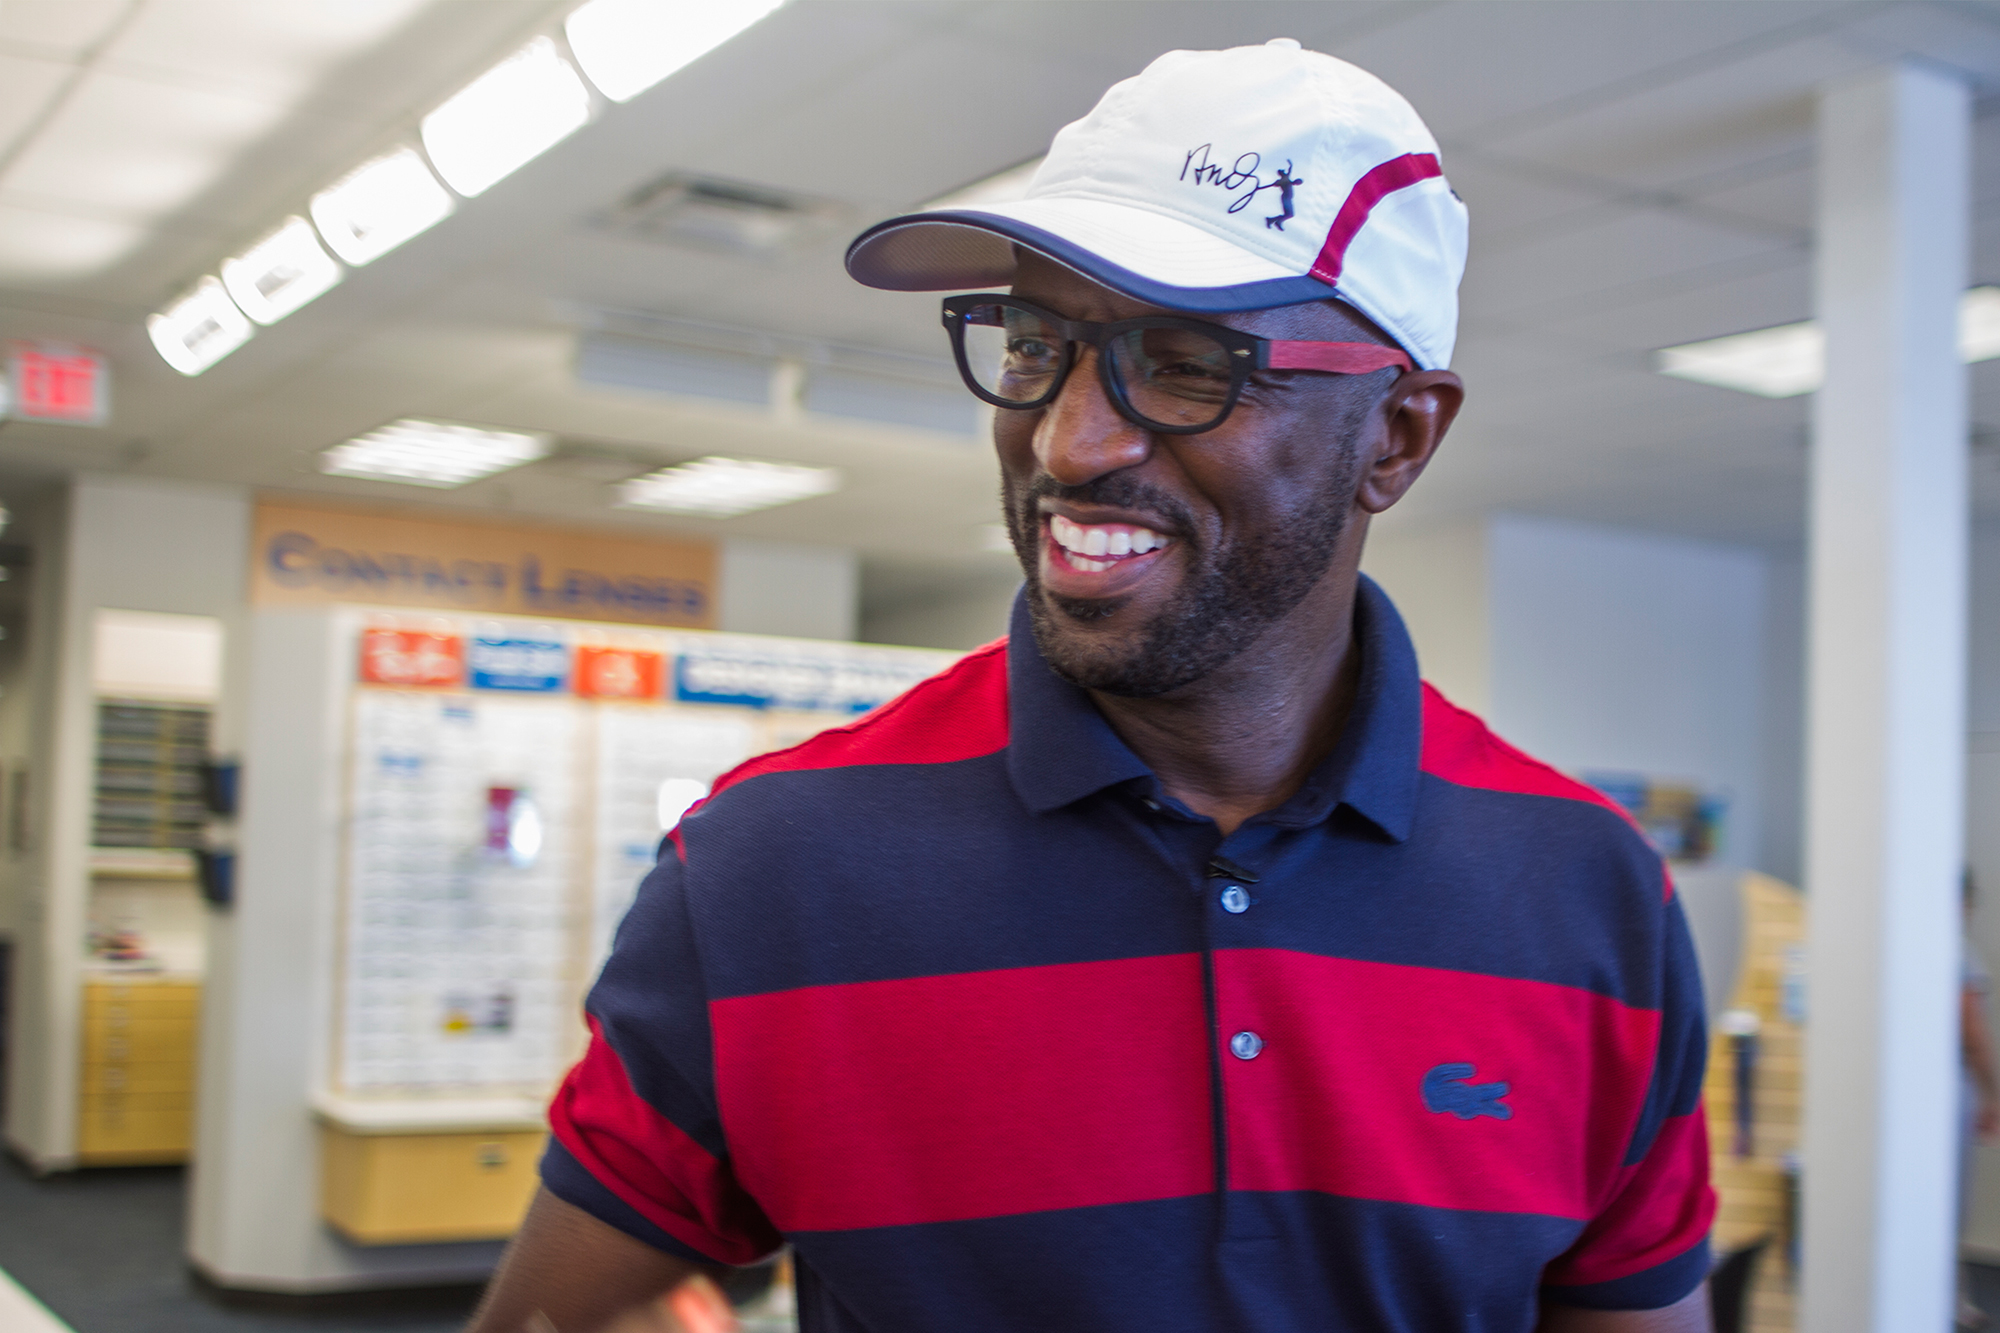 comedian rickey smiley partners with americas best contacts eyeglasses to make stylish eyewear more affordable